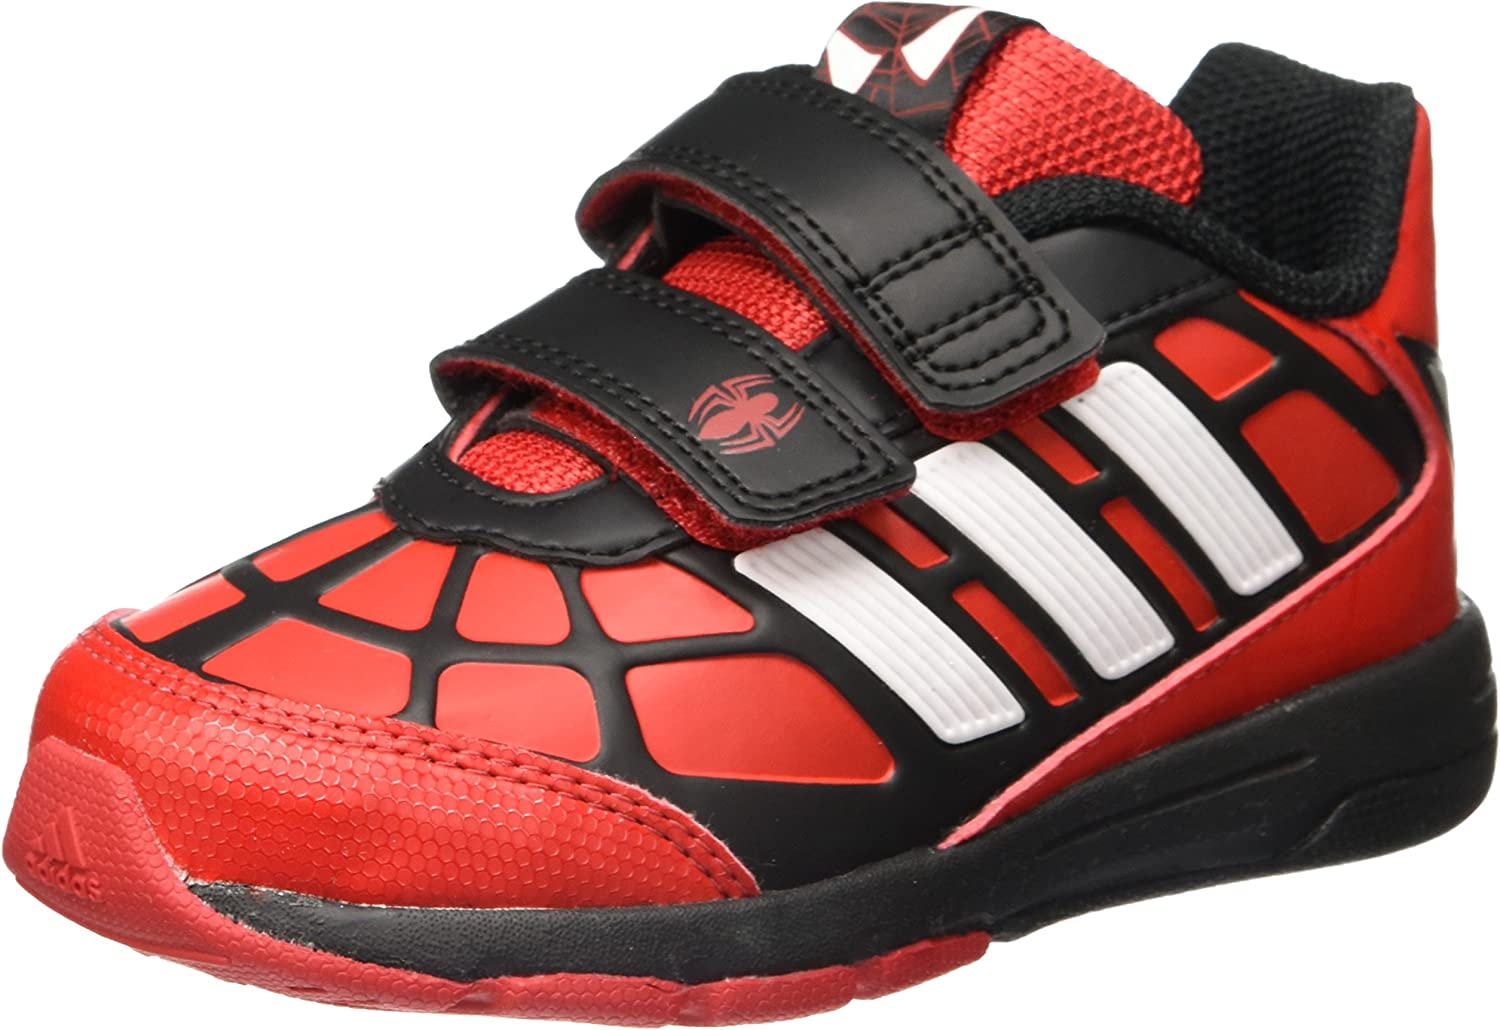 Adidas Disney Spiderman CF I M25947 Unisex-child Sneakers / Kids shoes / Baby trainers Red